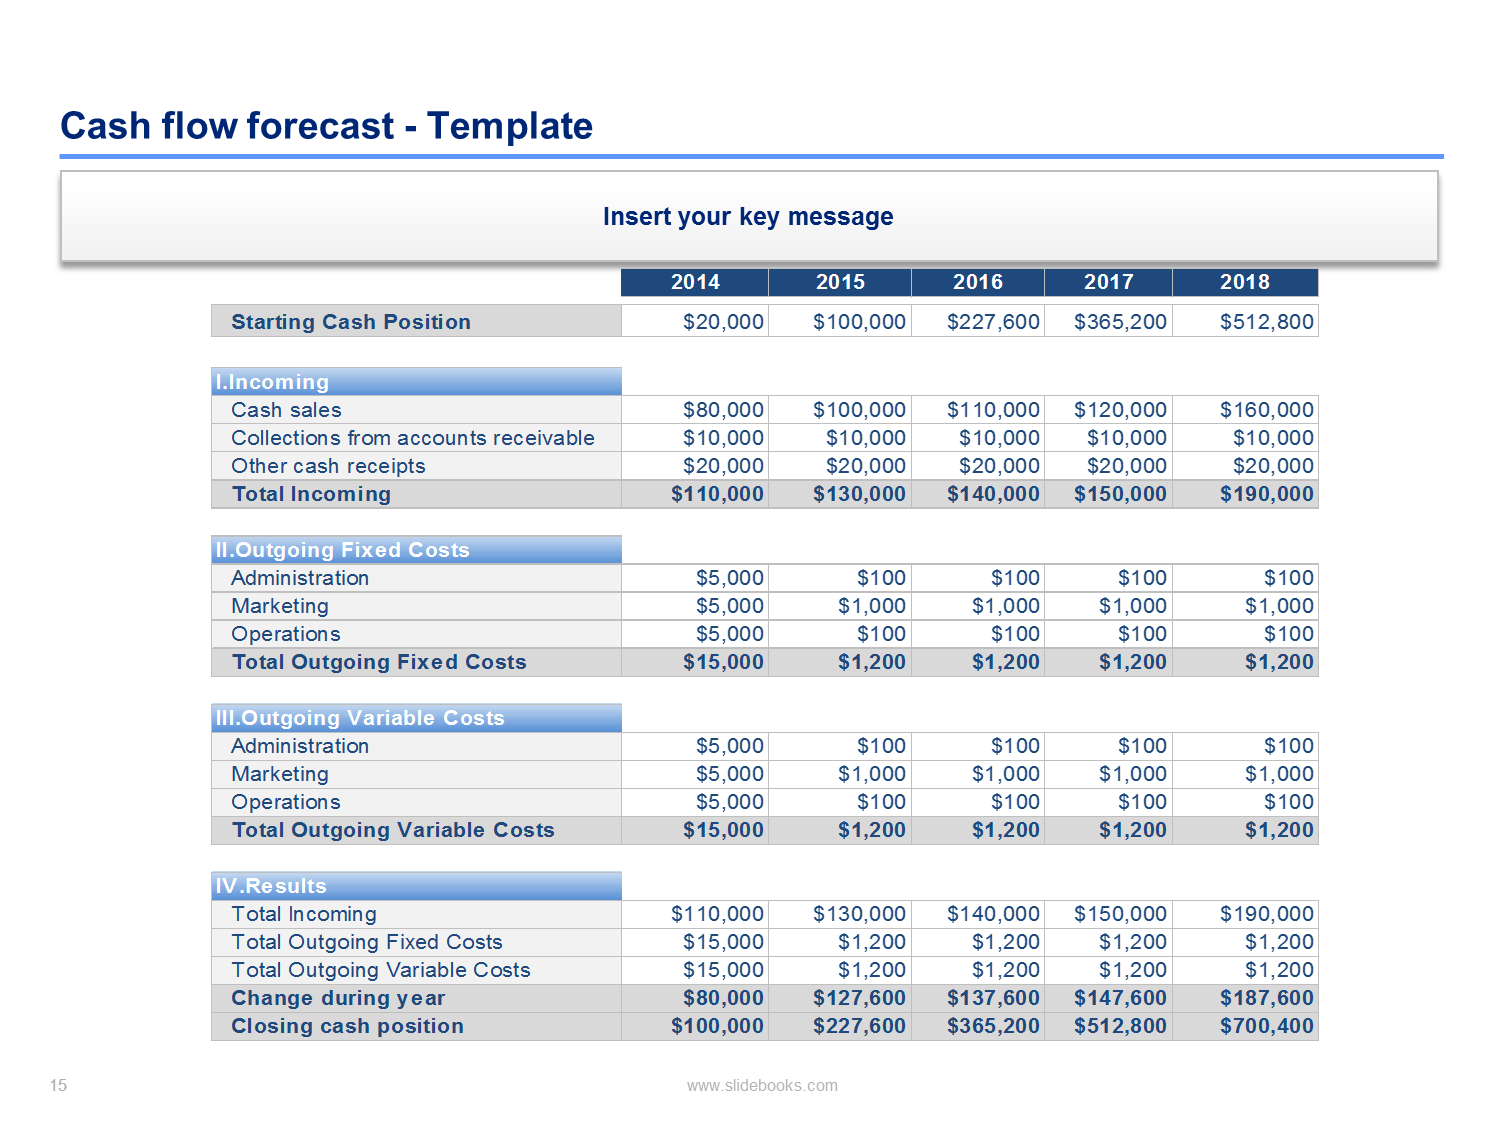 Financial plan example for small businesses (With images